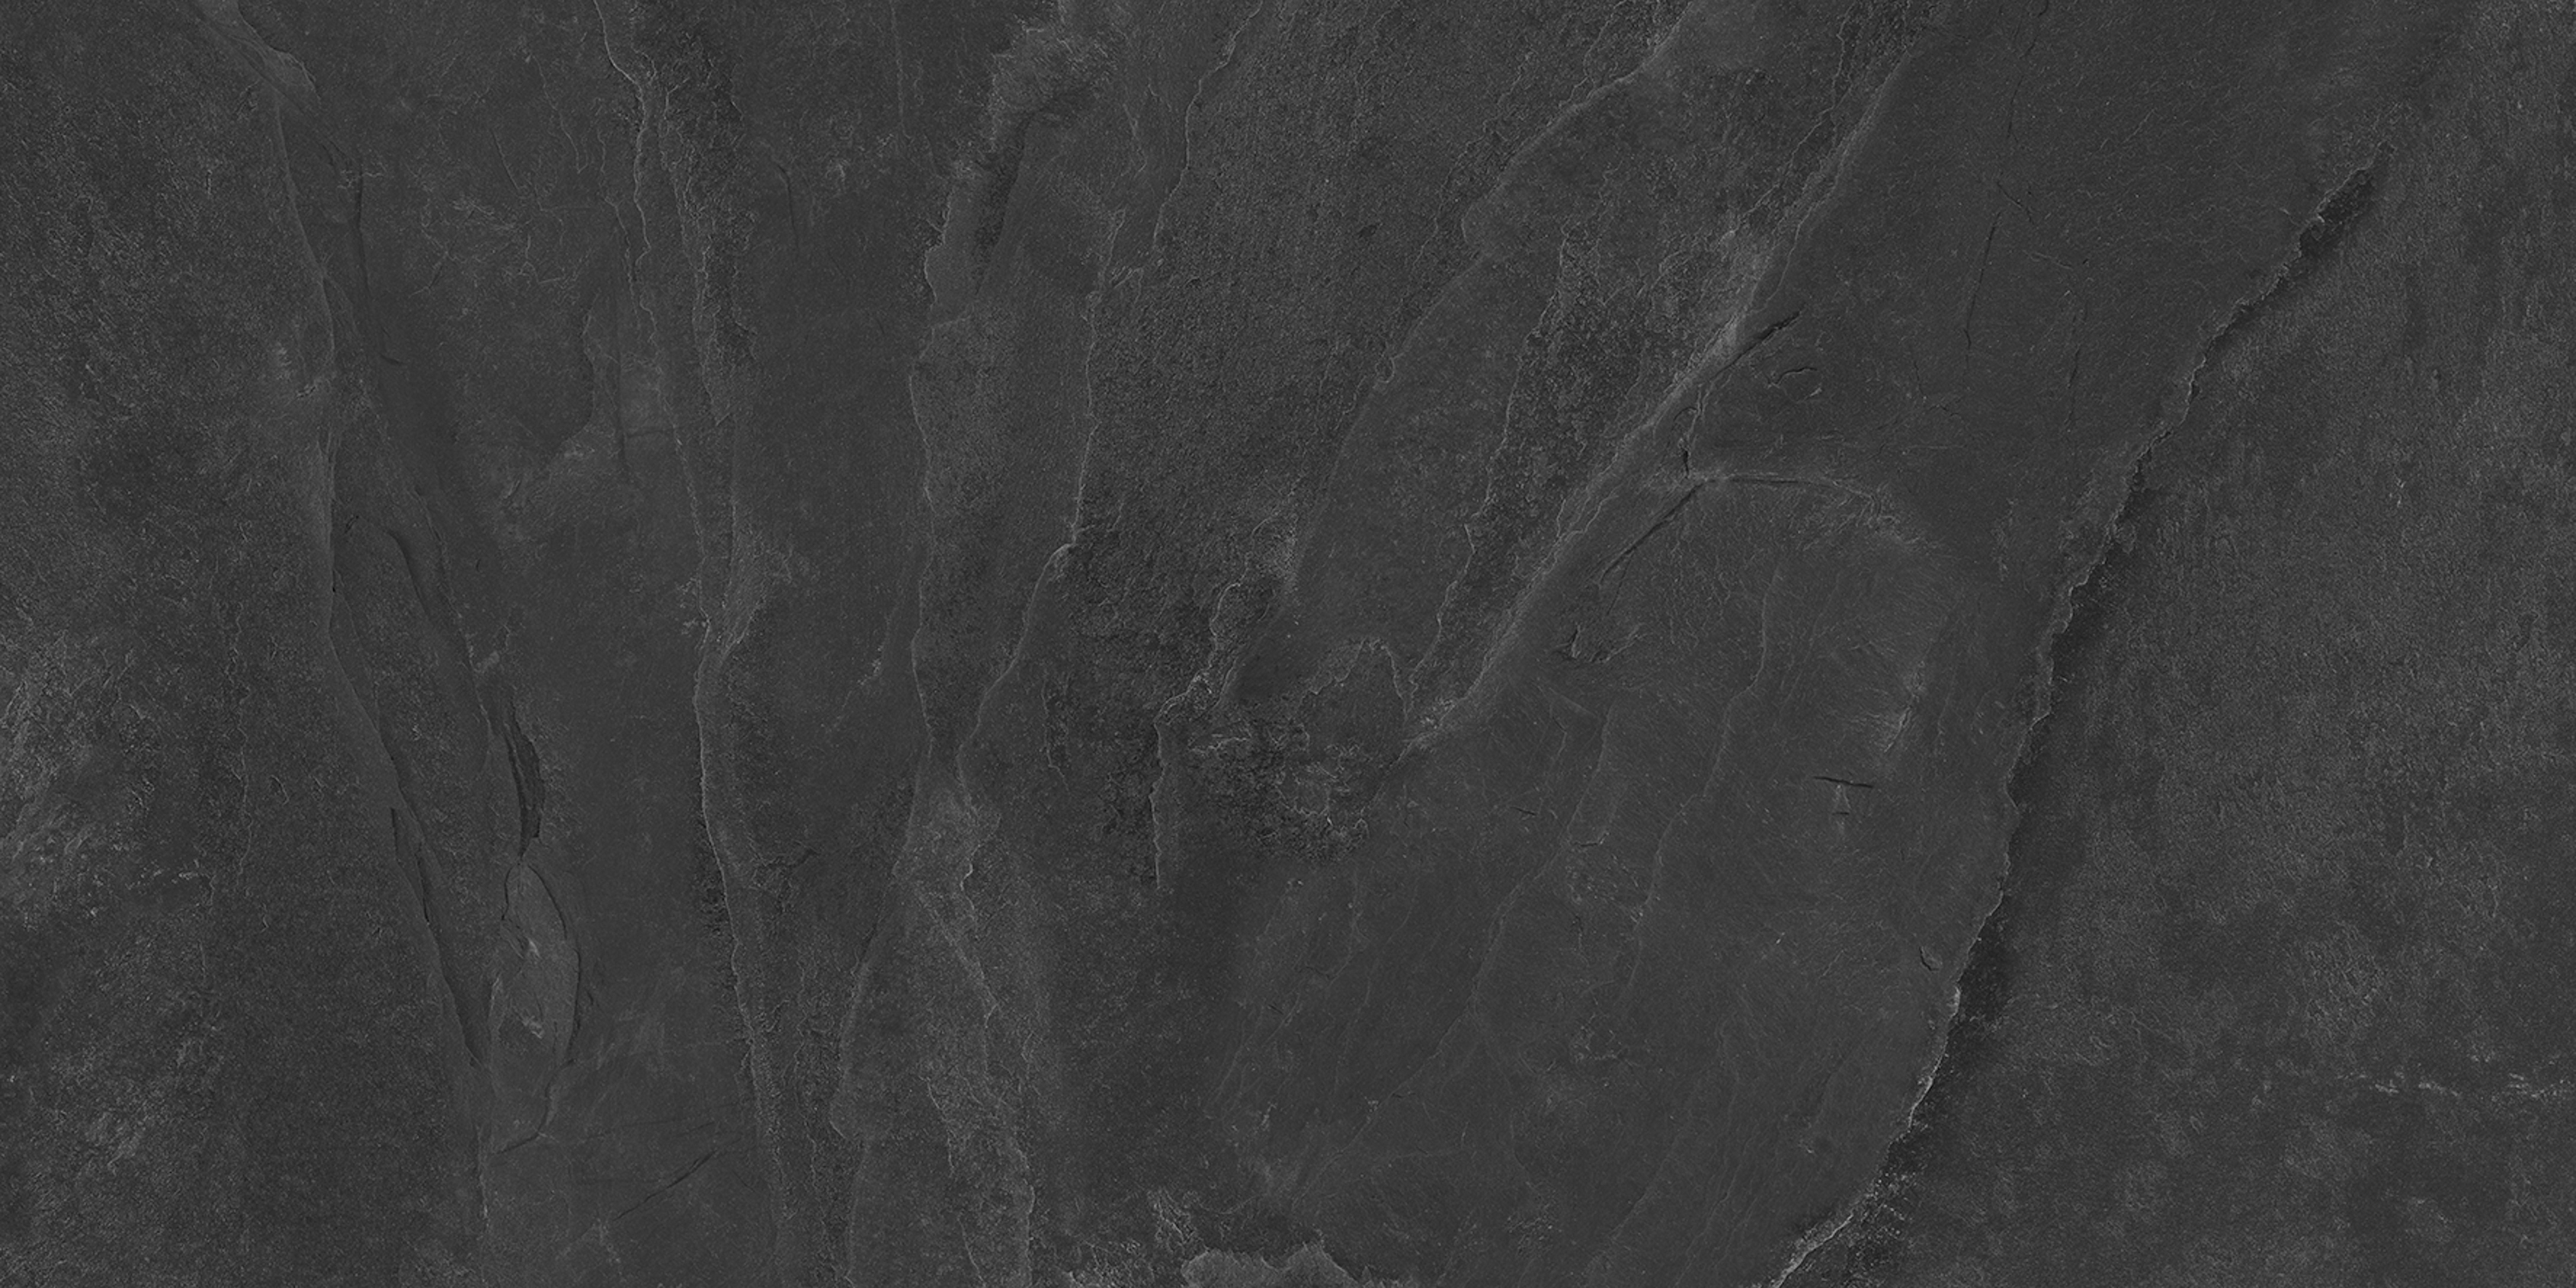 Imperial Wall Ceramic Tiles